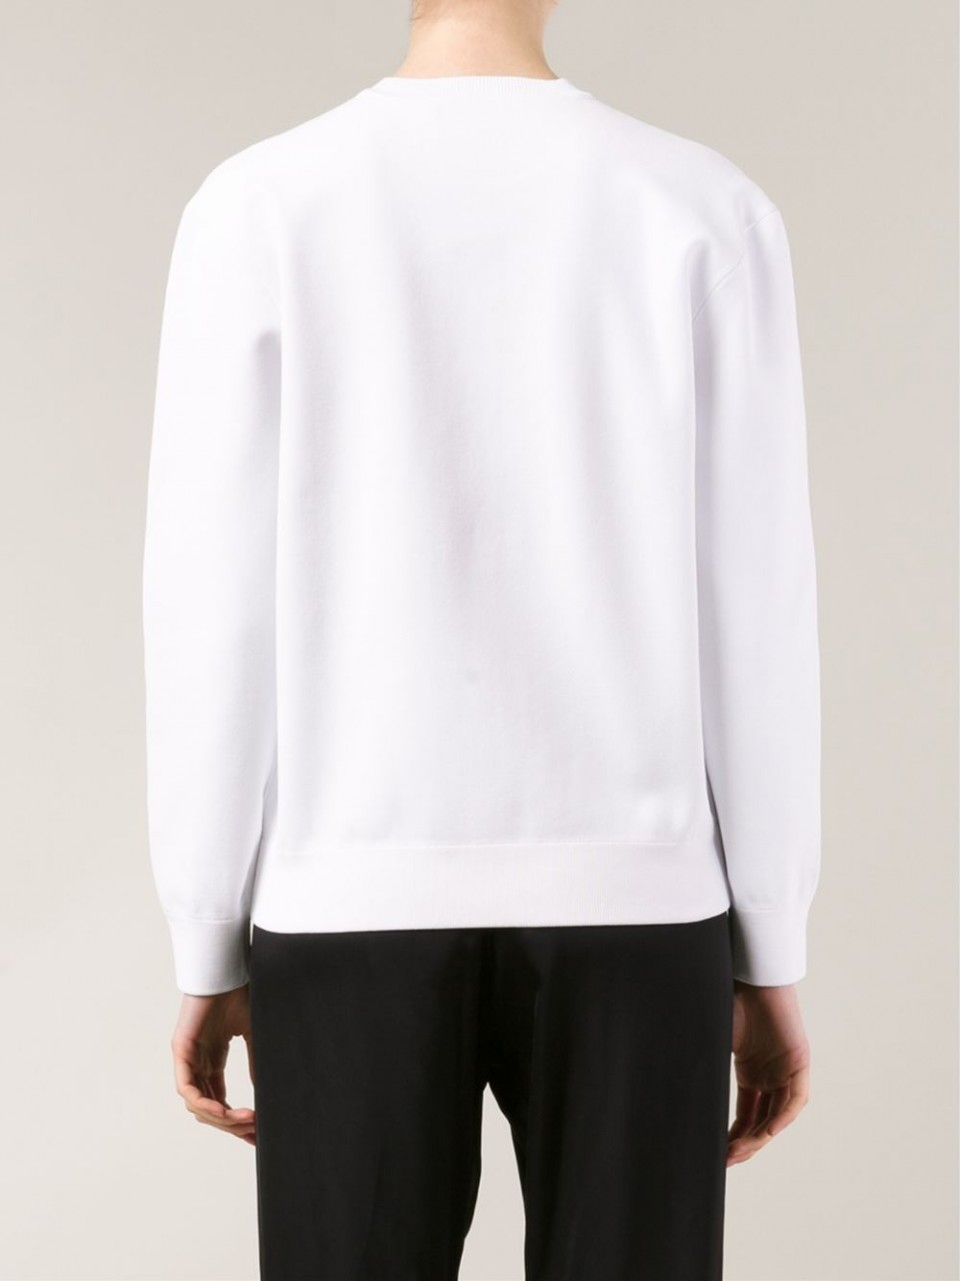 Alexander wang logo barcode sweatshirt in white bleach for Can you bleach white shirts with logos